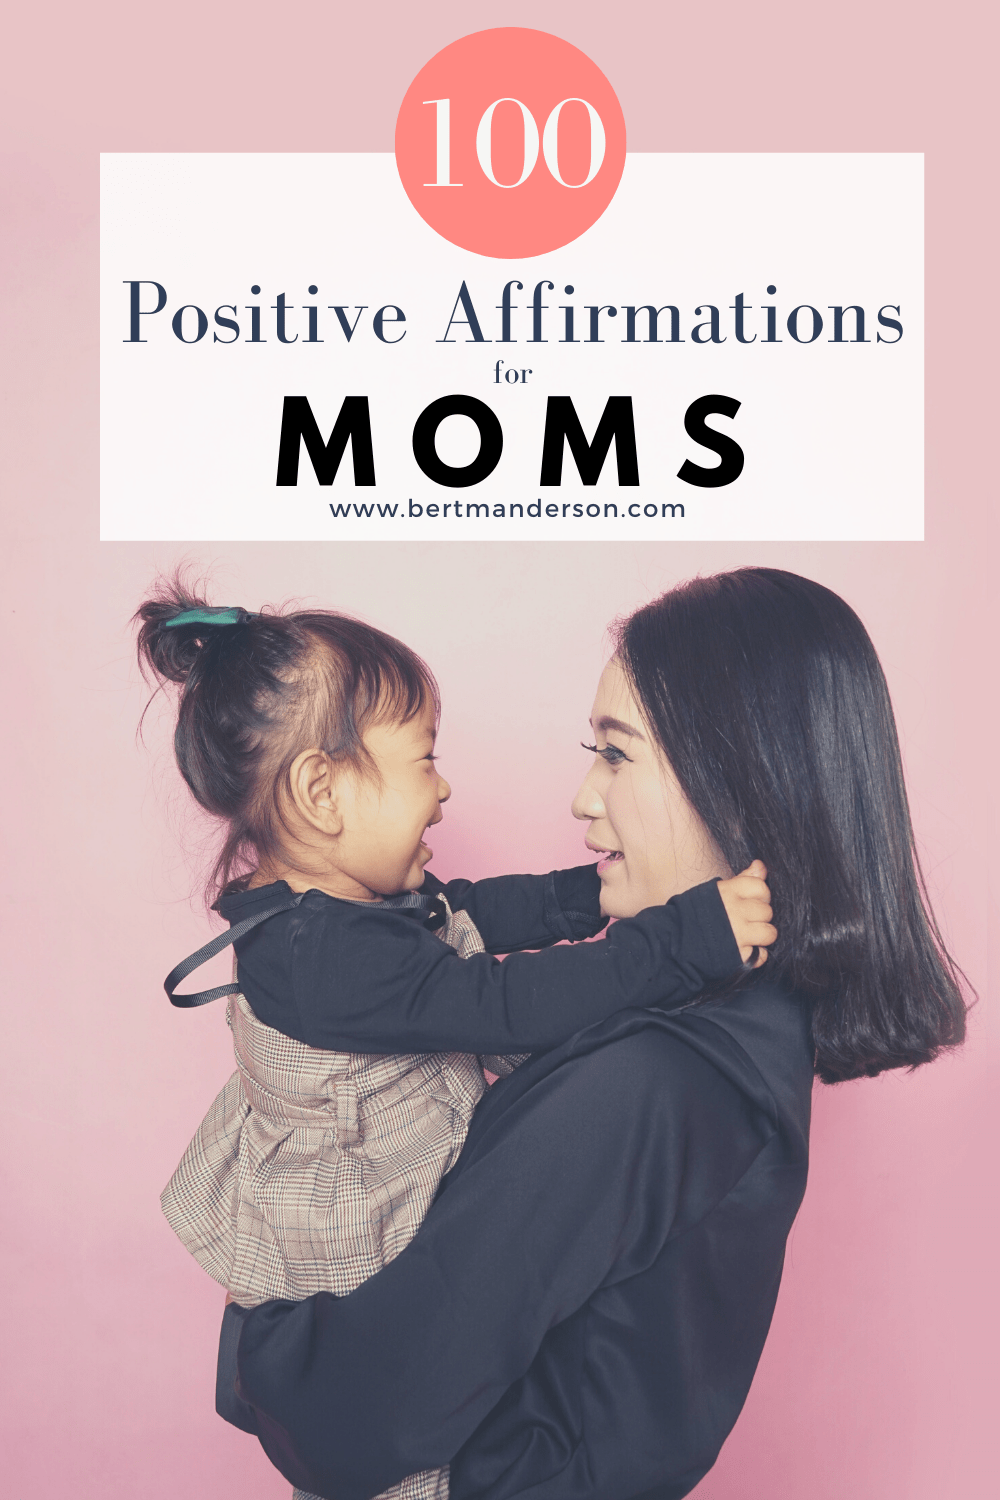 100 Positive Affirmations for Moms